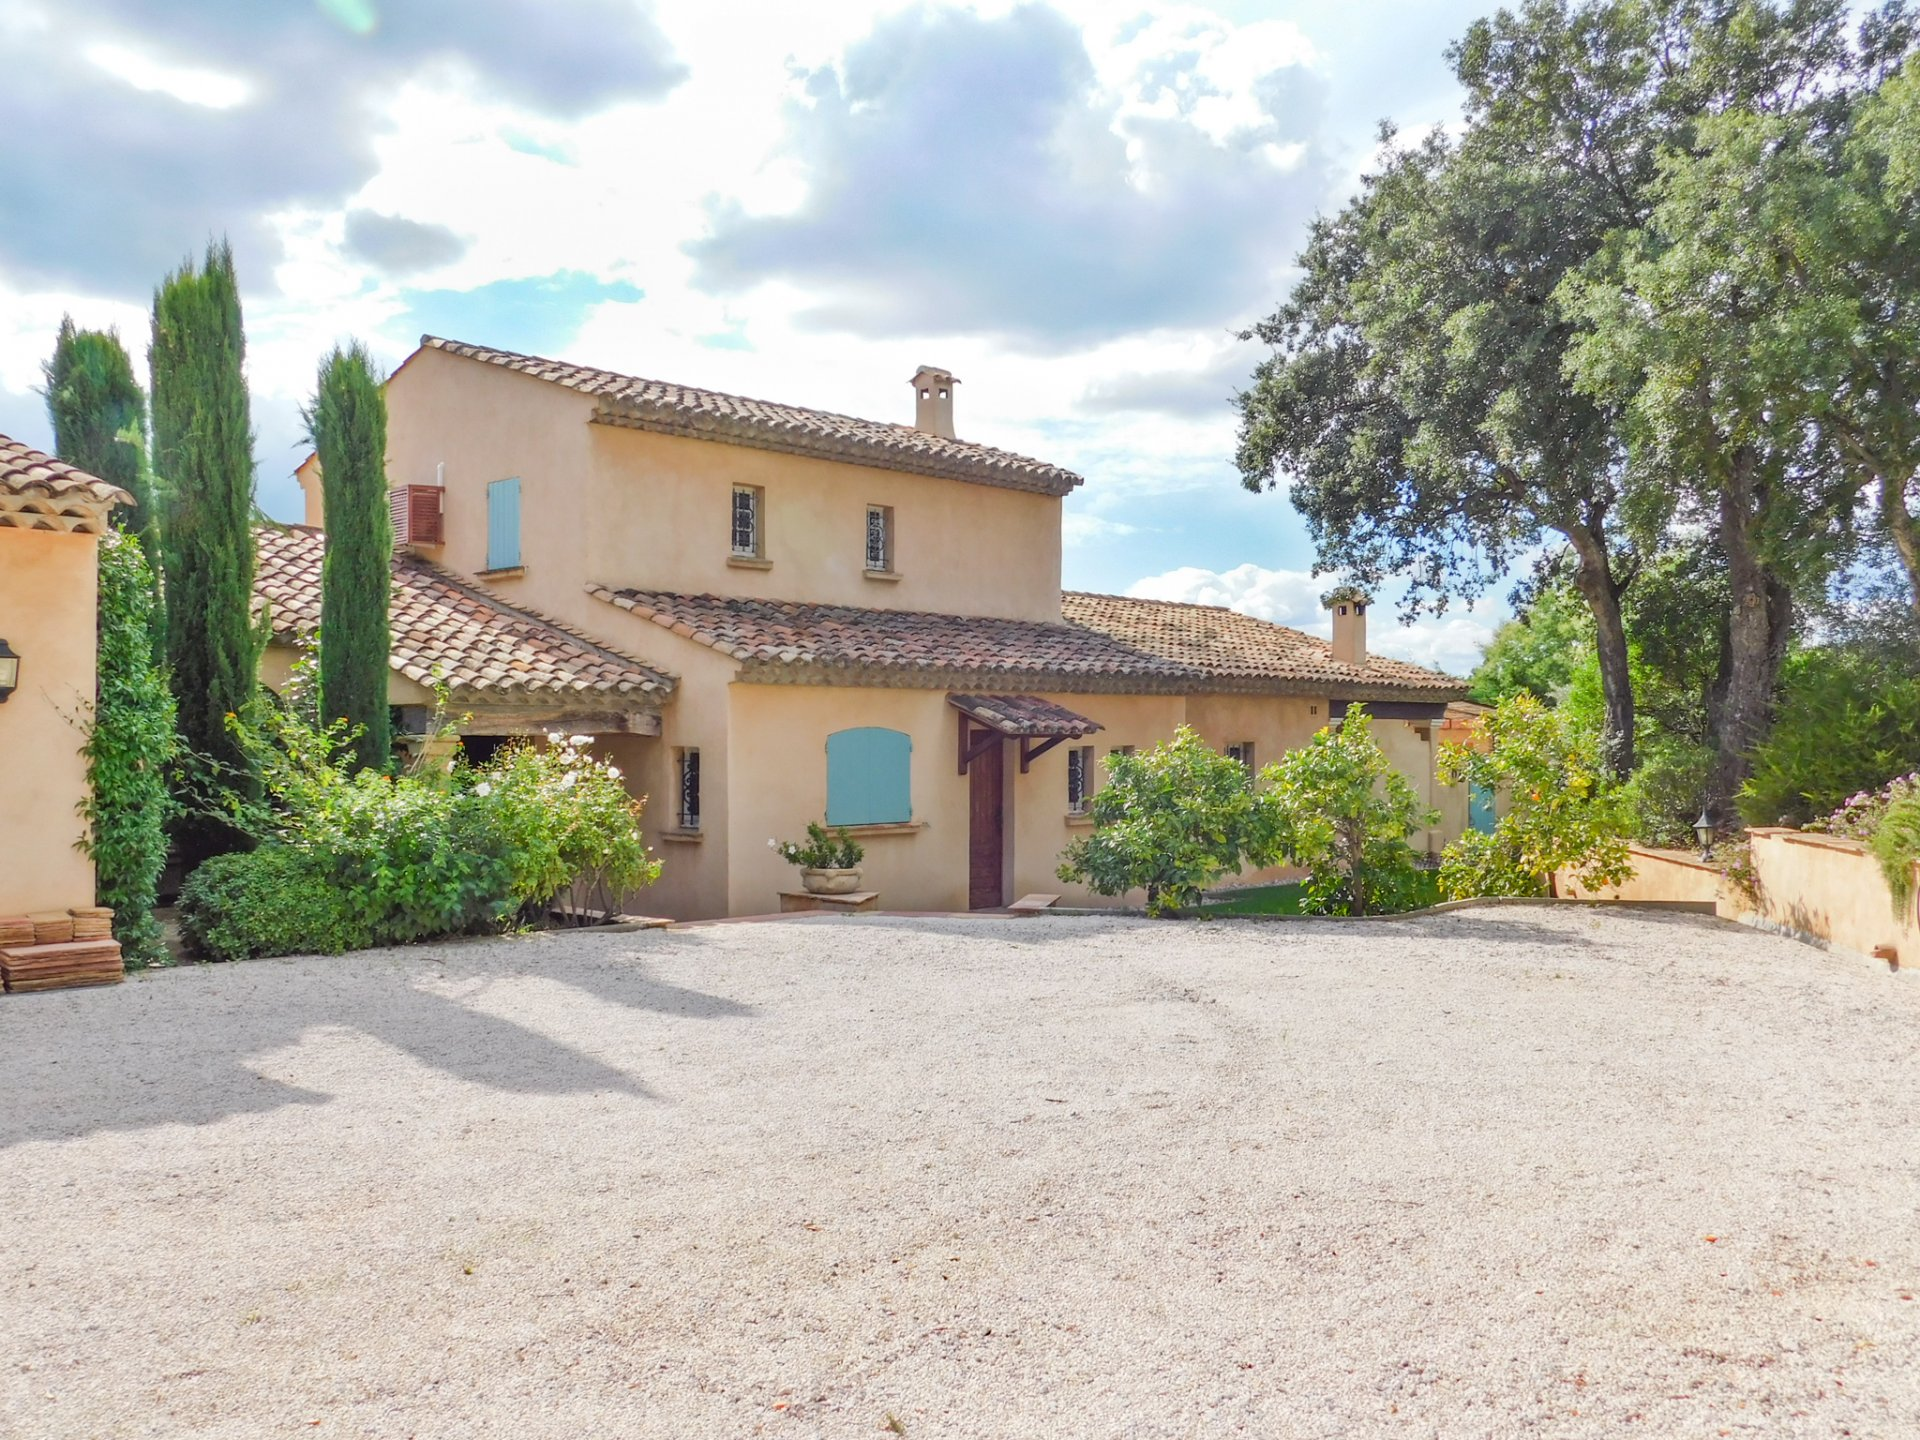 Gulf of St Tropez - Magnifient provençal style property with sea-view.